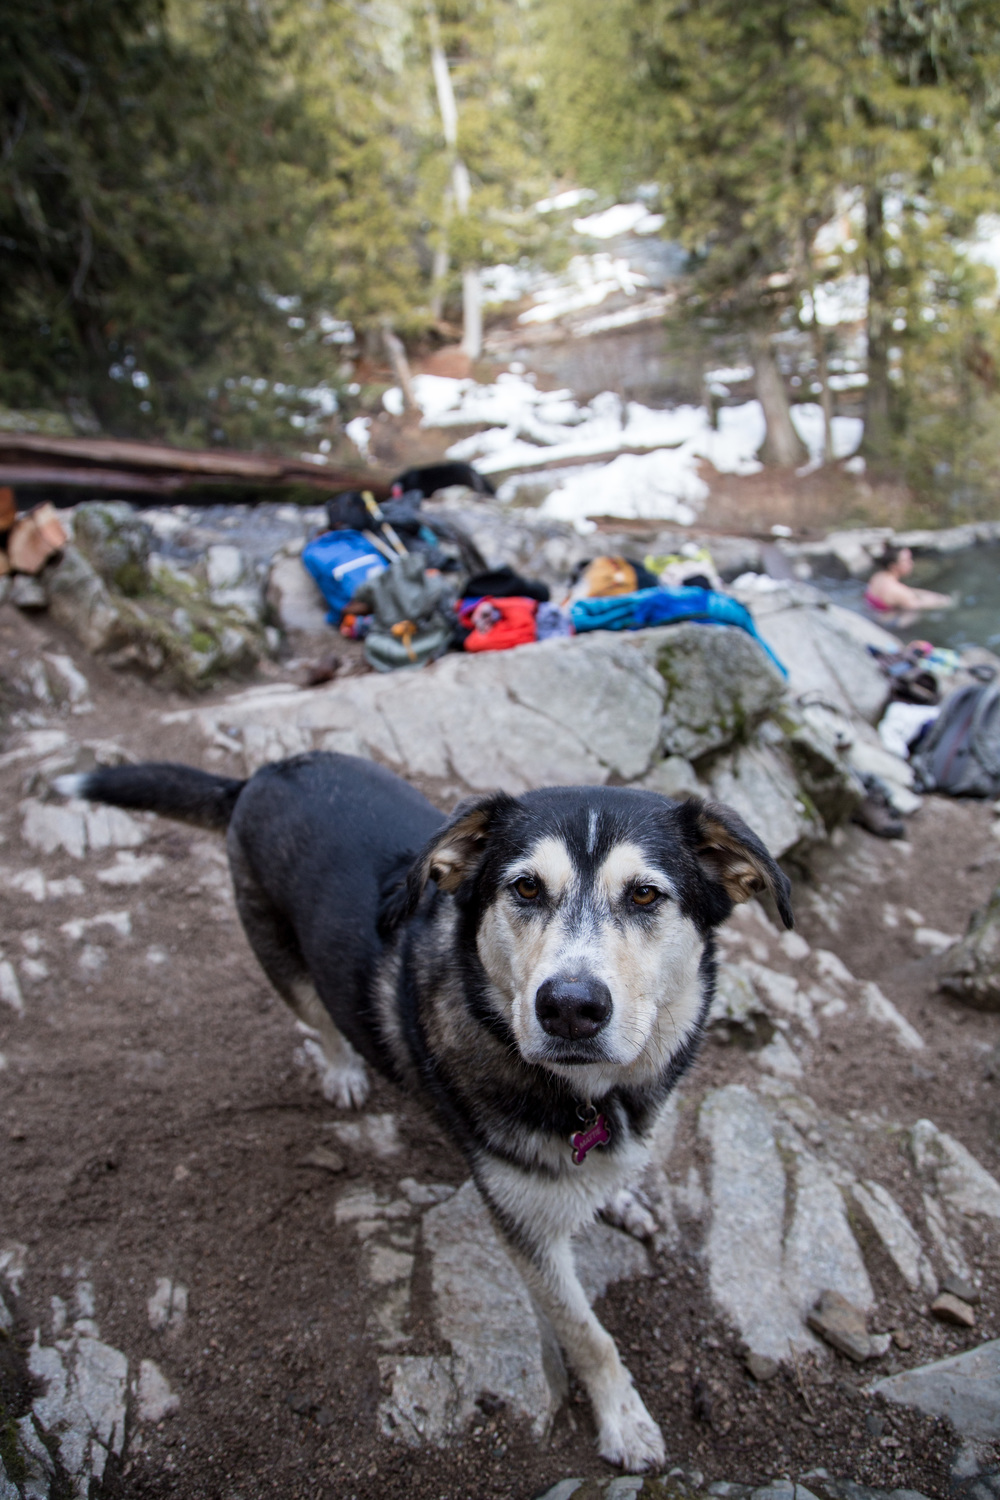 An Alaskan dog, we met two other groups of Alaskans at the hot springs.